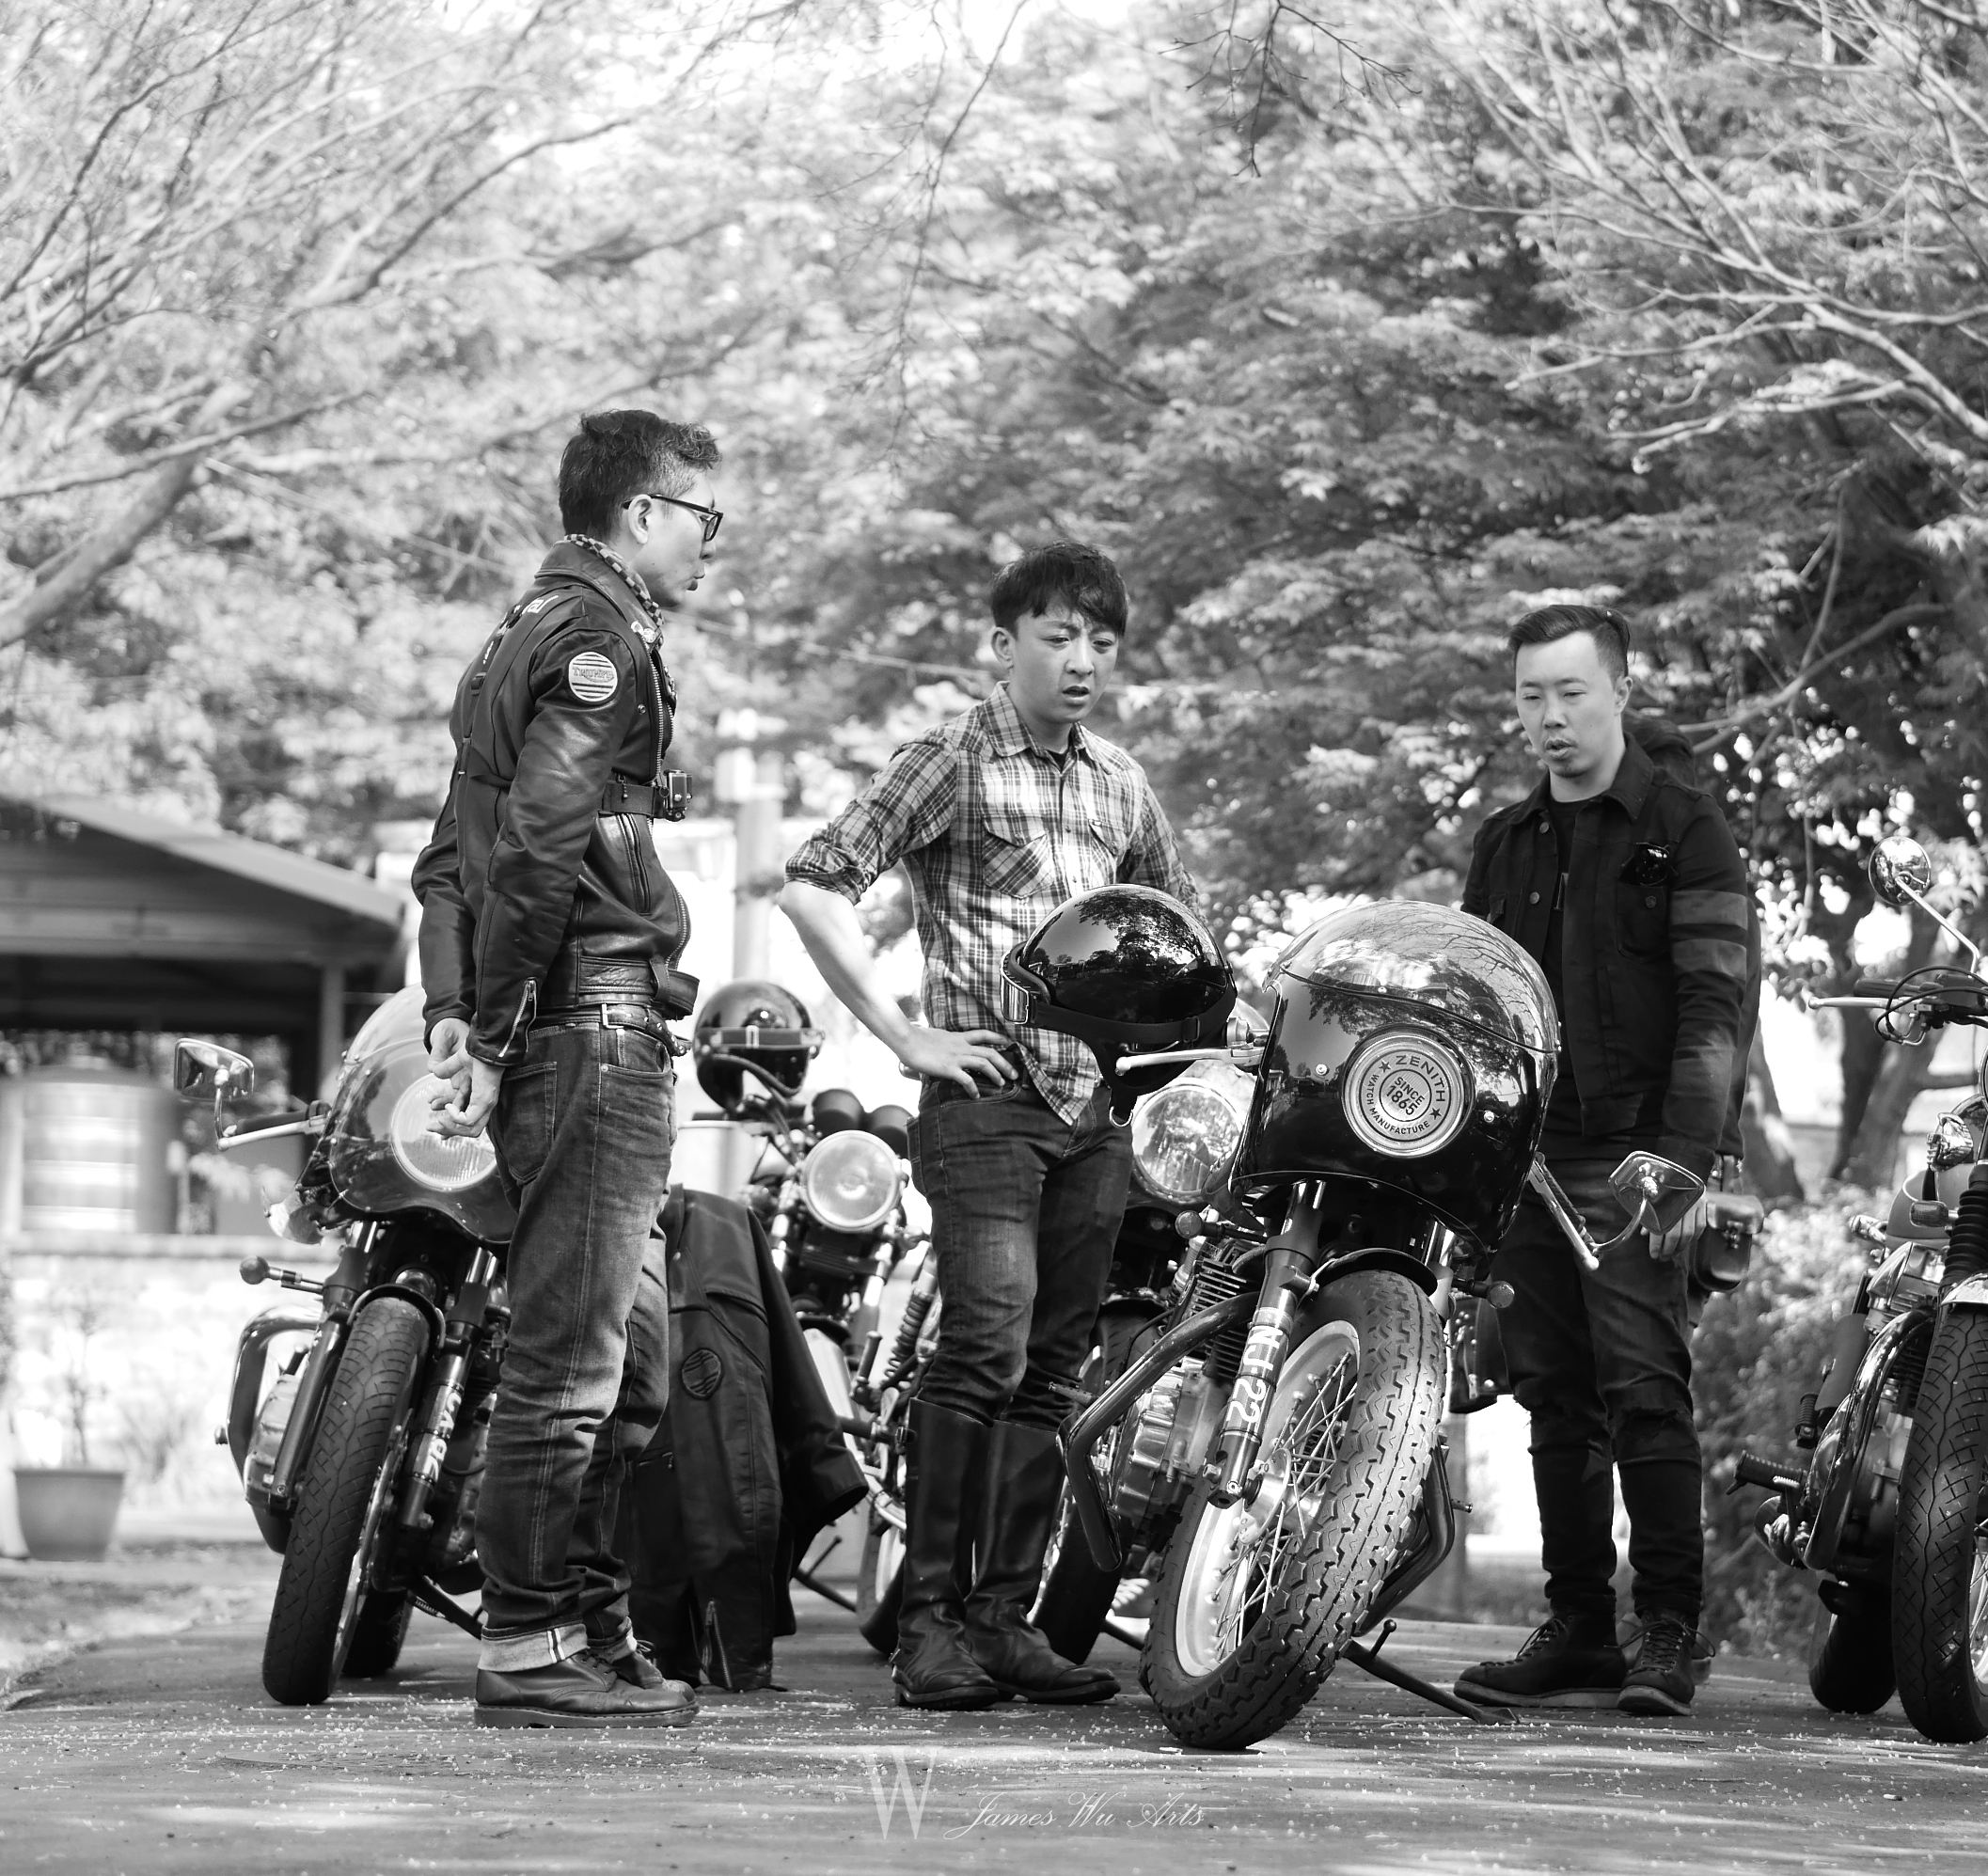 TONUP ROCKERS CAFE RACER (69)